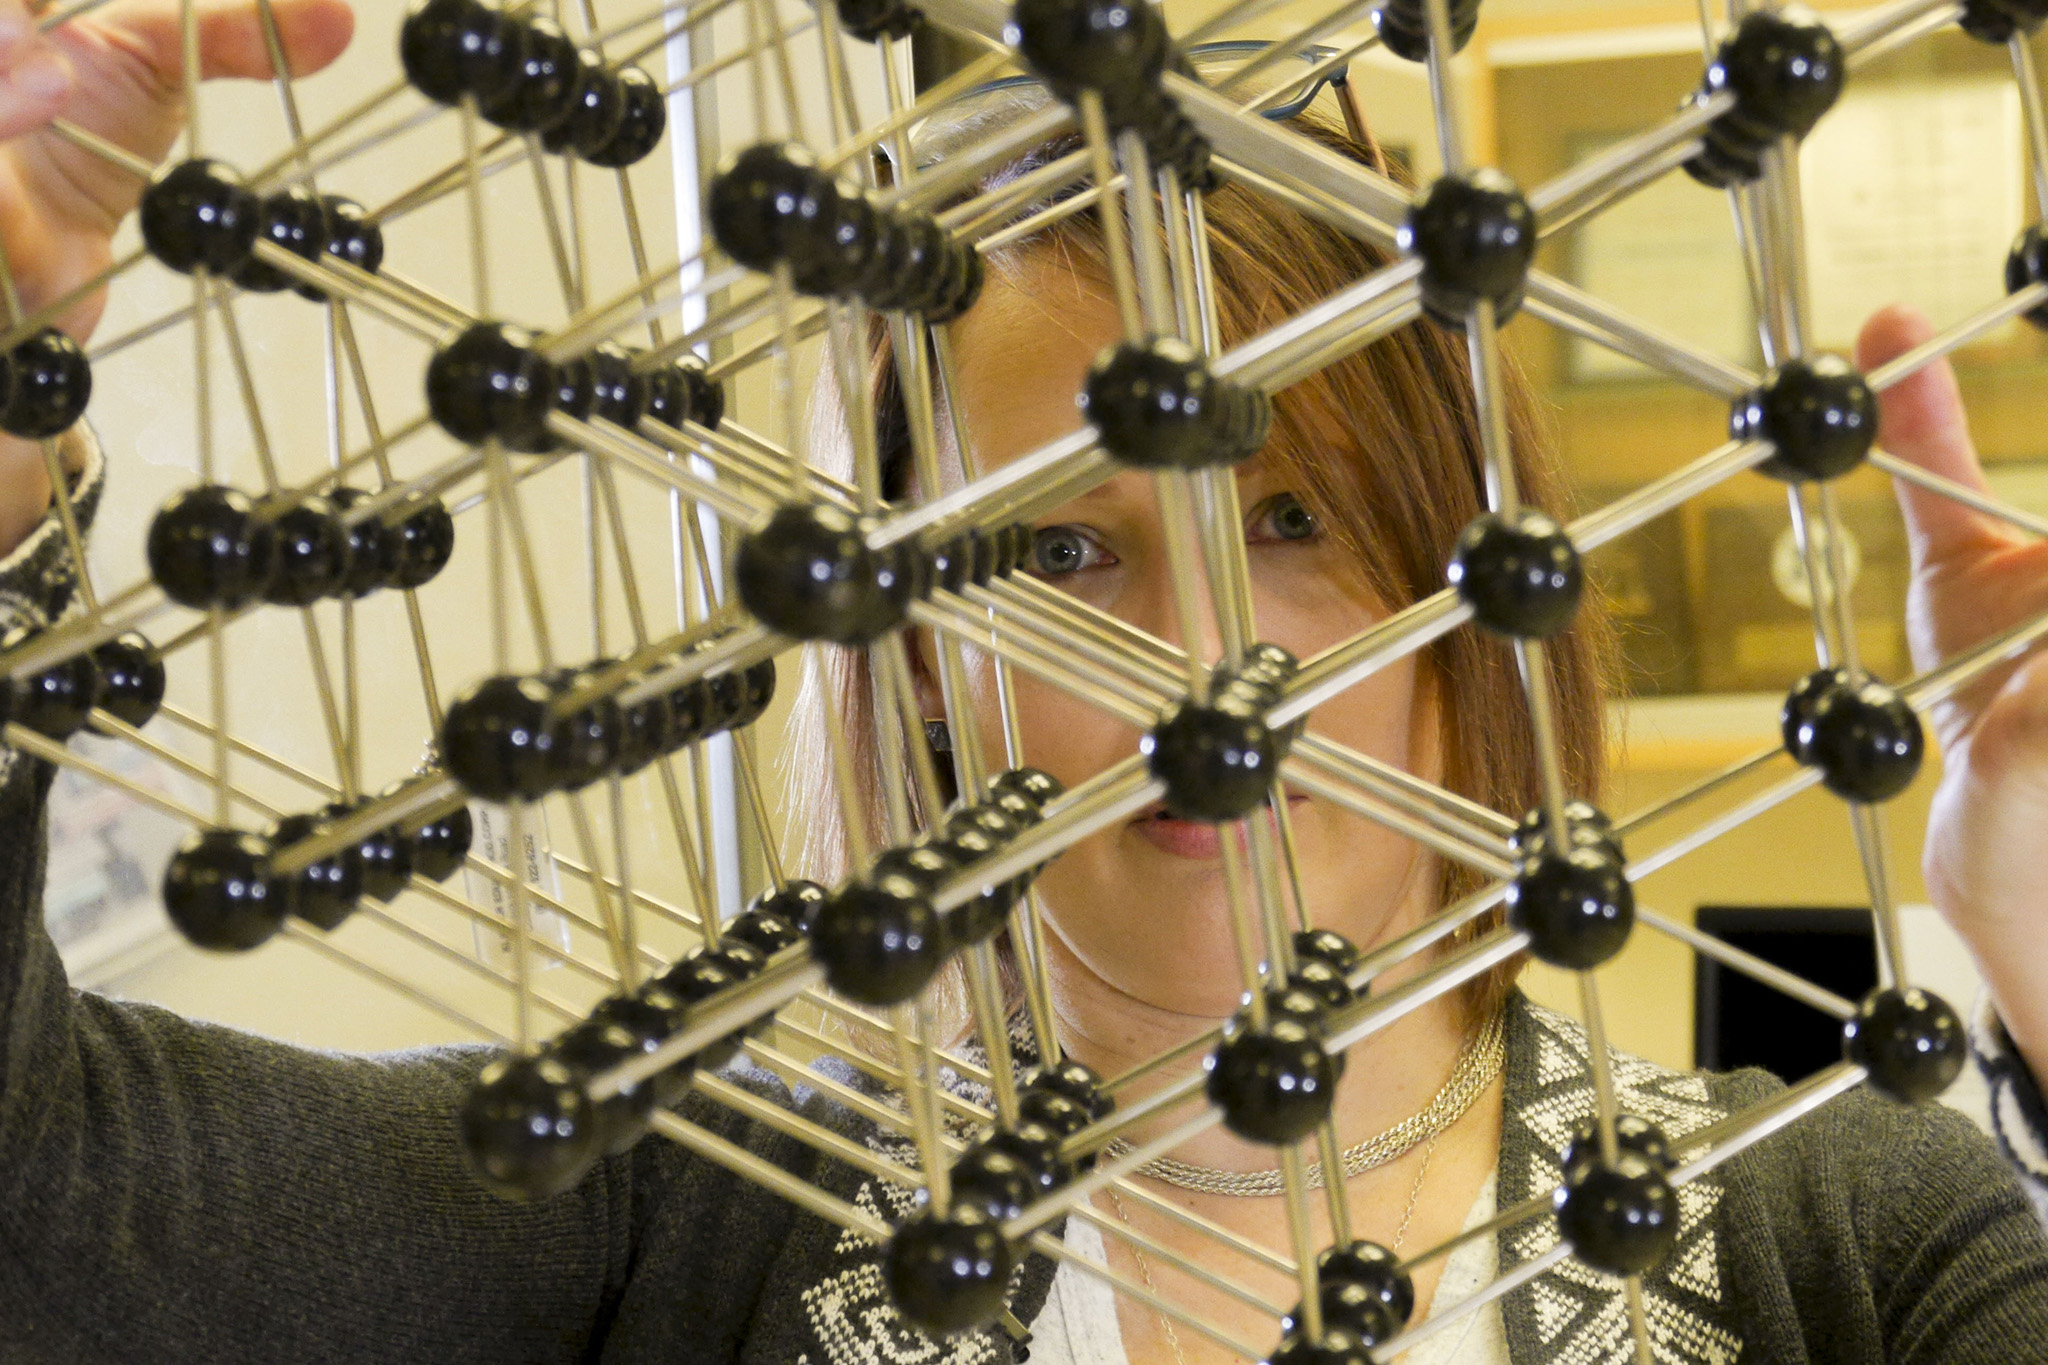 A photograph of MSE Professor Joanna Millunchick holding a crystalline structure.